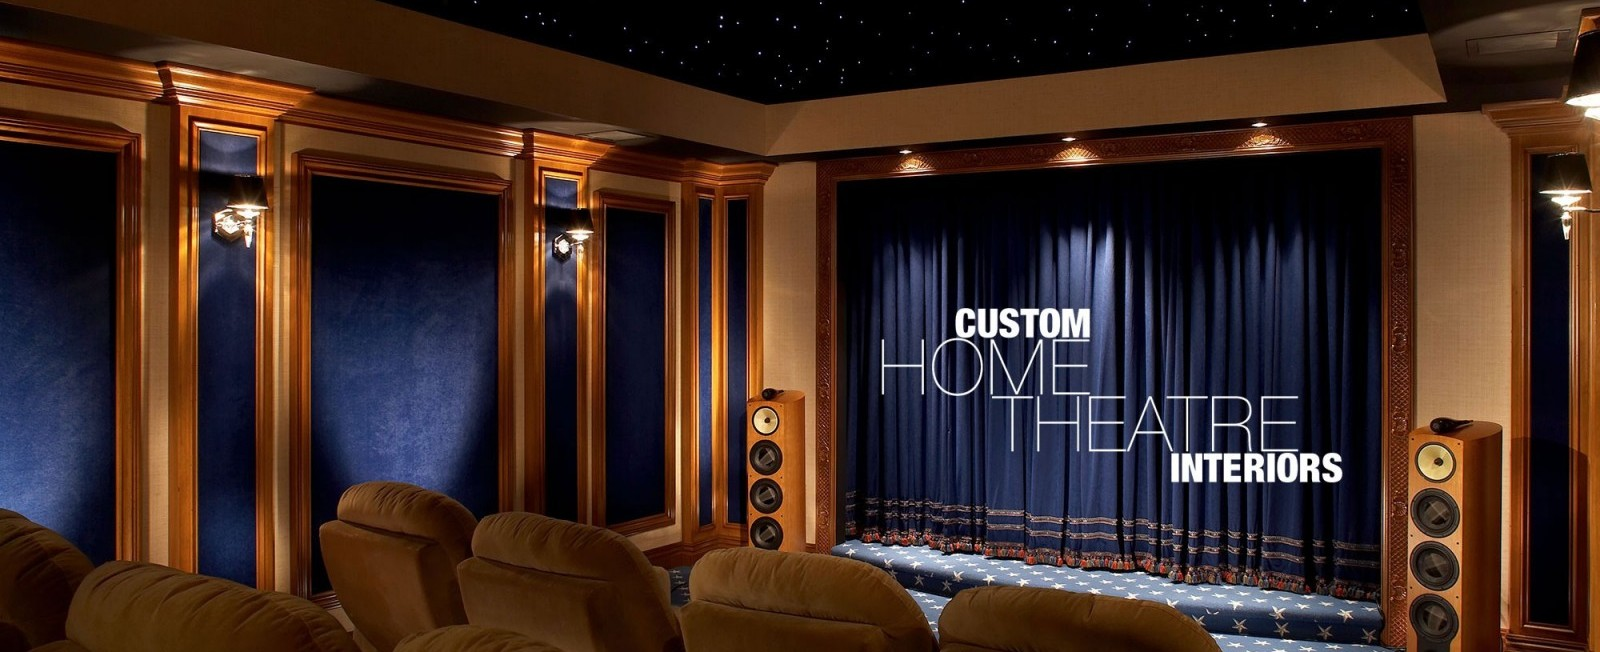 Beau Custom_home